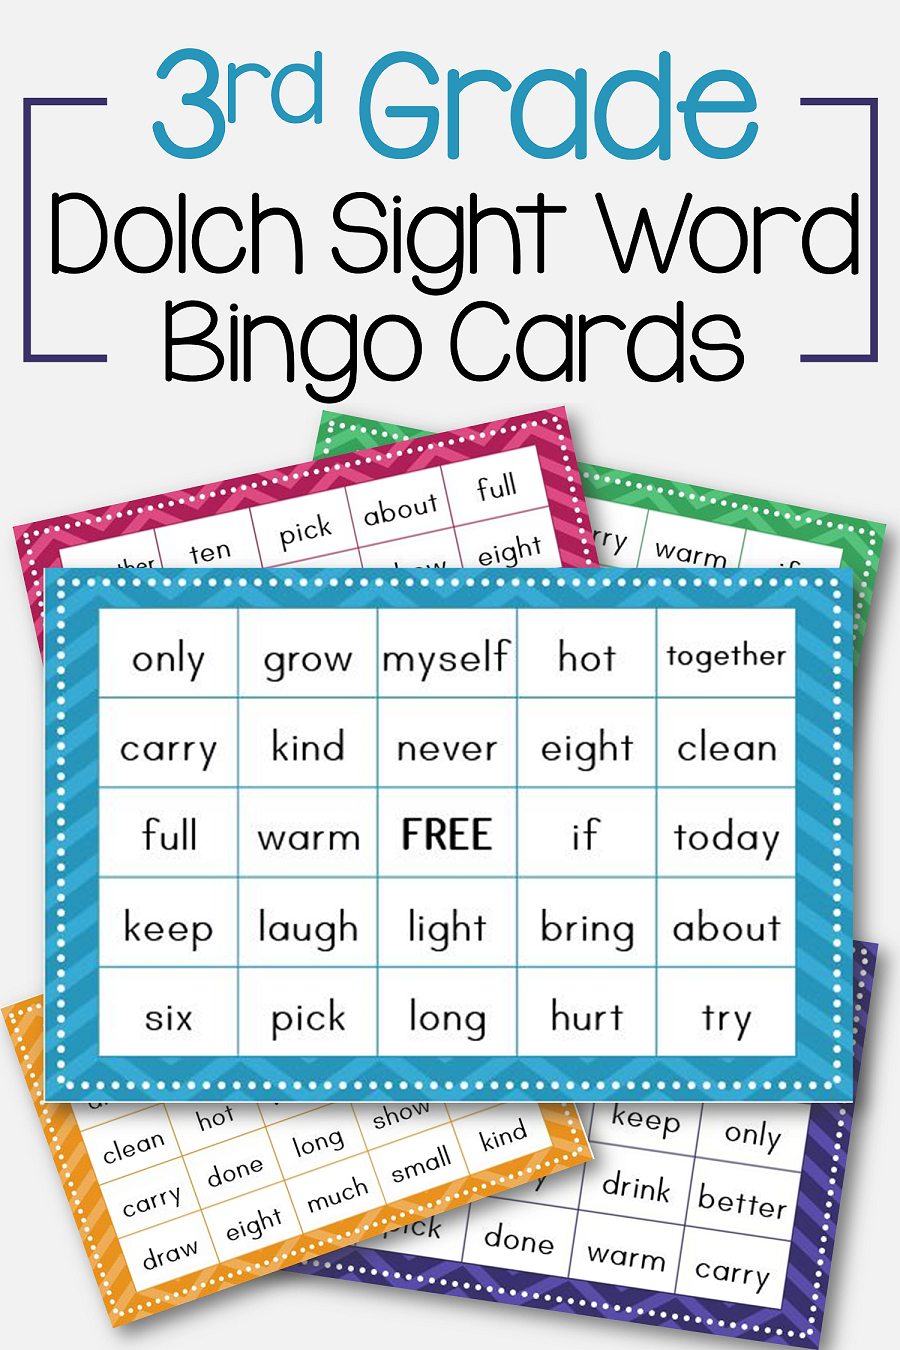 3Rd Grade Dolch Sight Word Bingo Card Printable: Includes 30